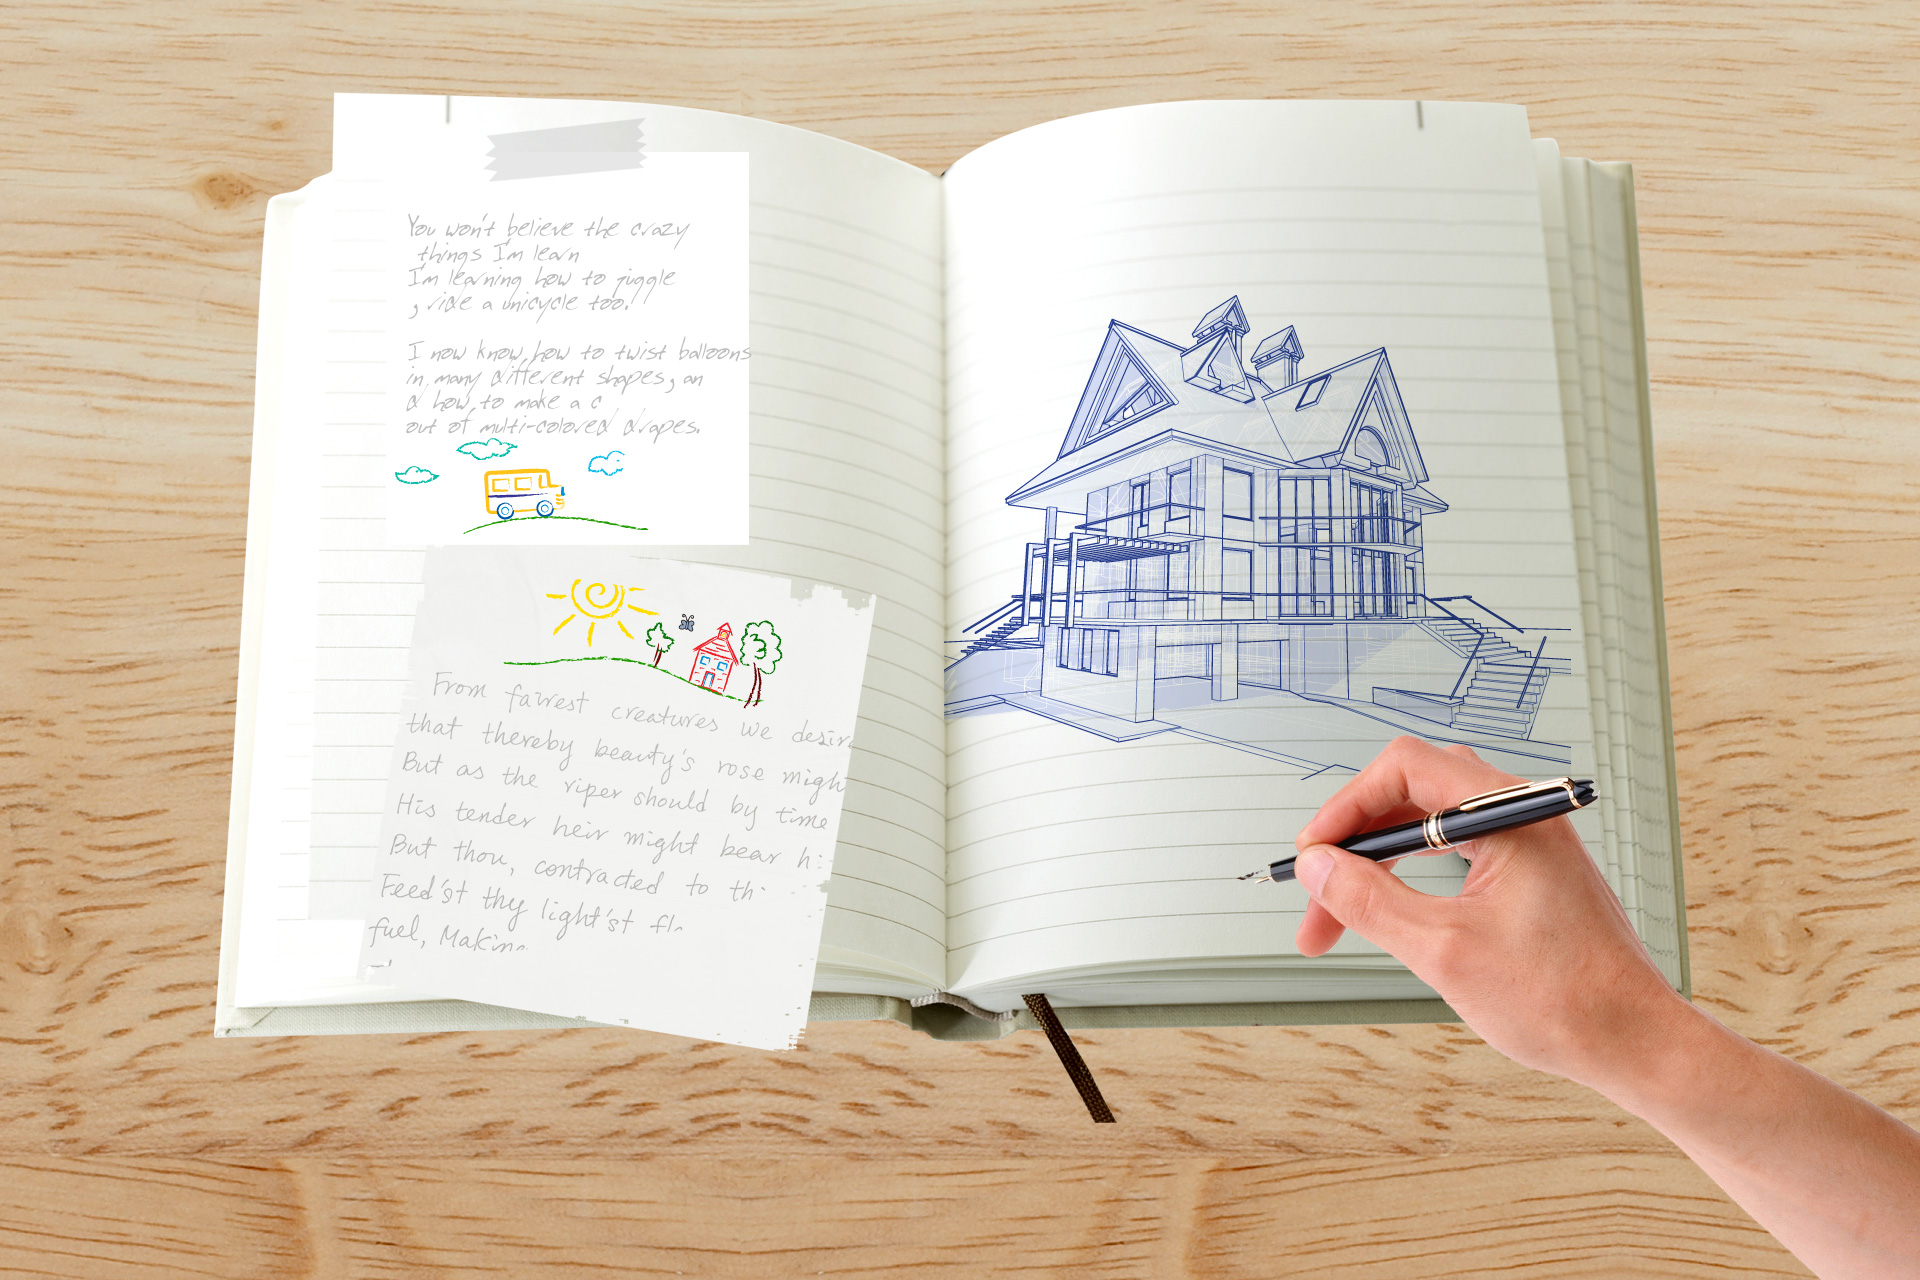 Free download high resolution image - free image free photo free stock image public domain picture -Hand drawing on the notebook